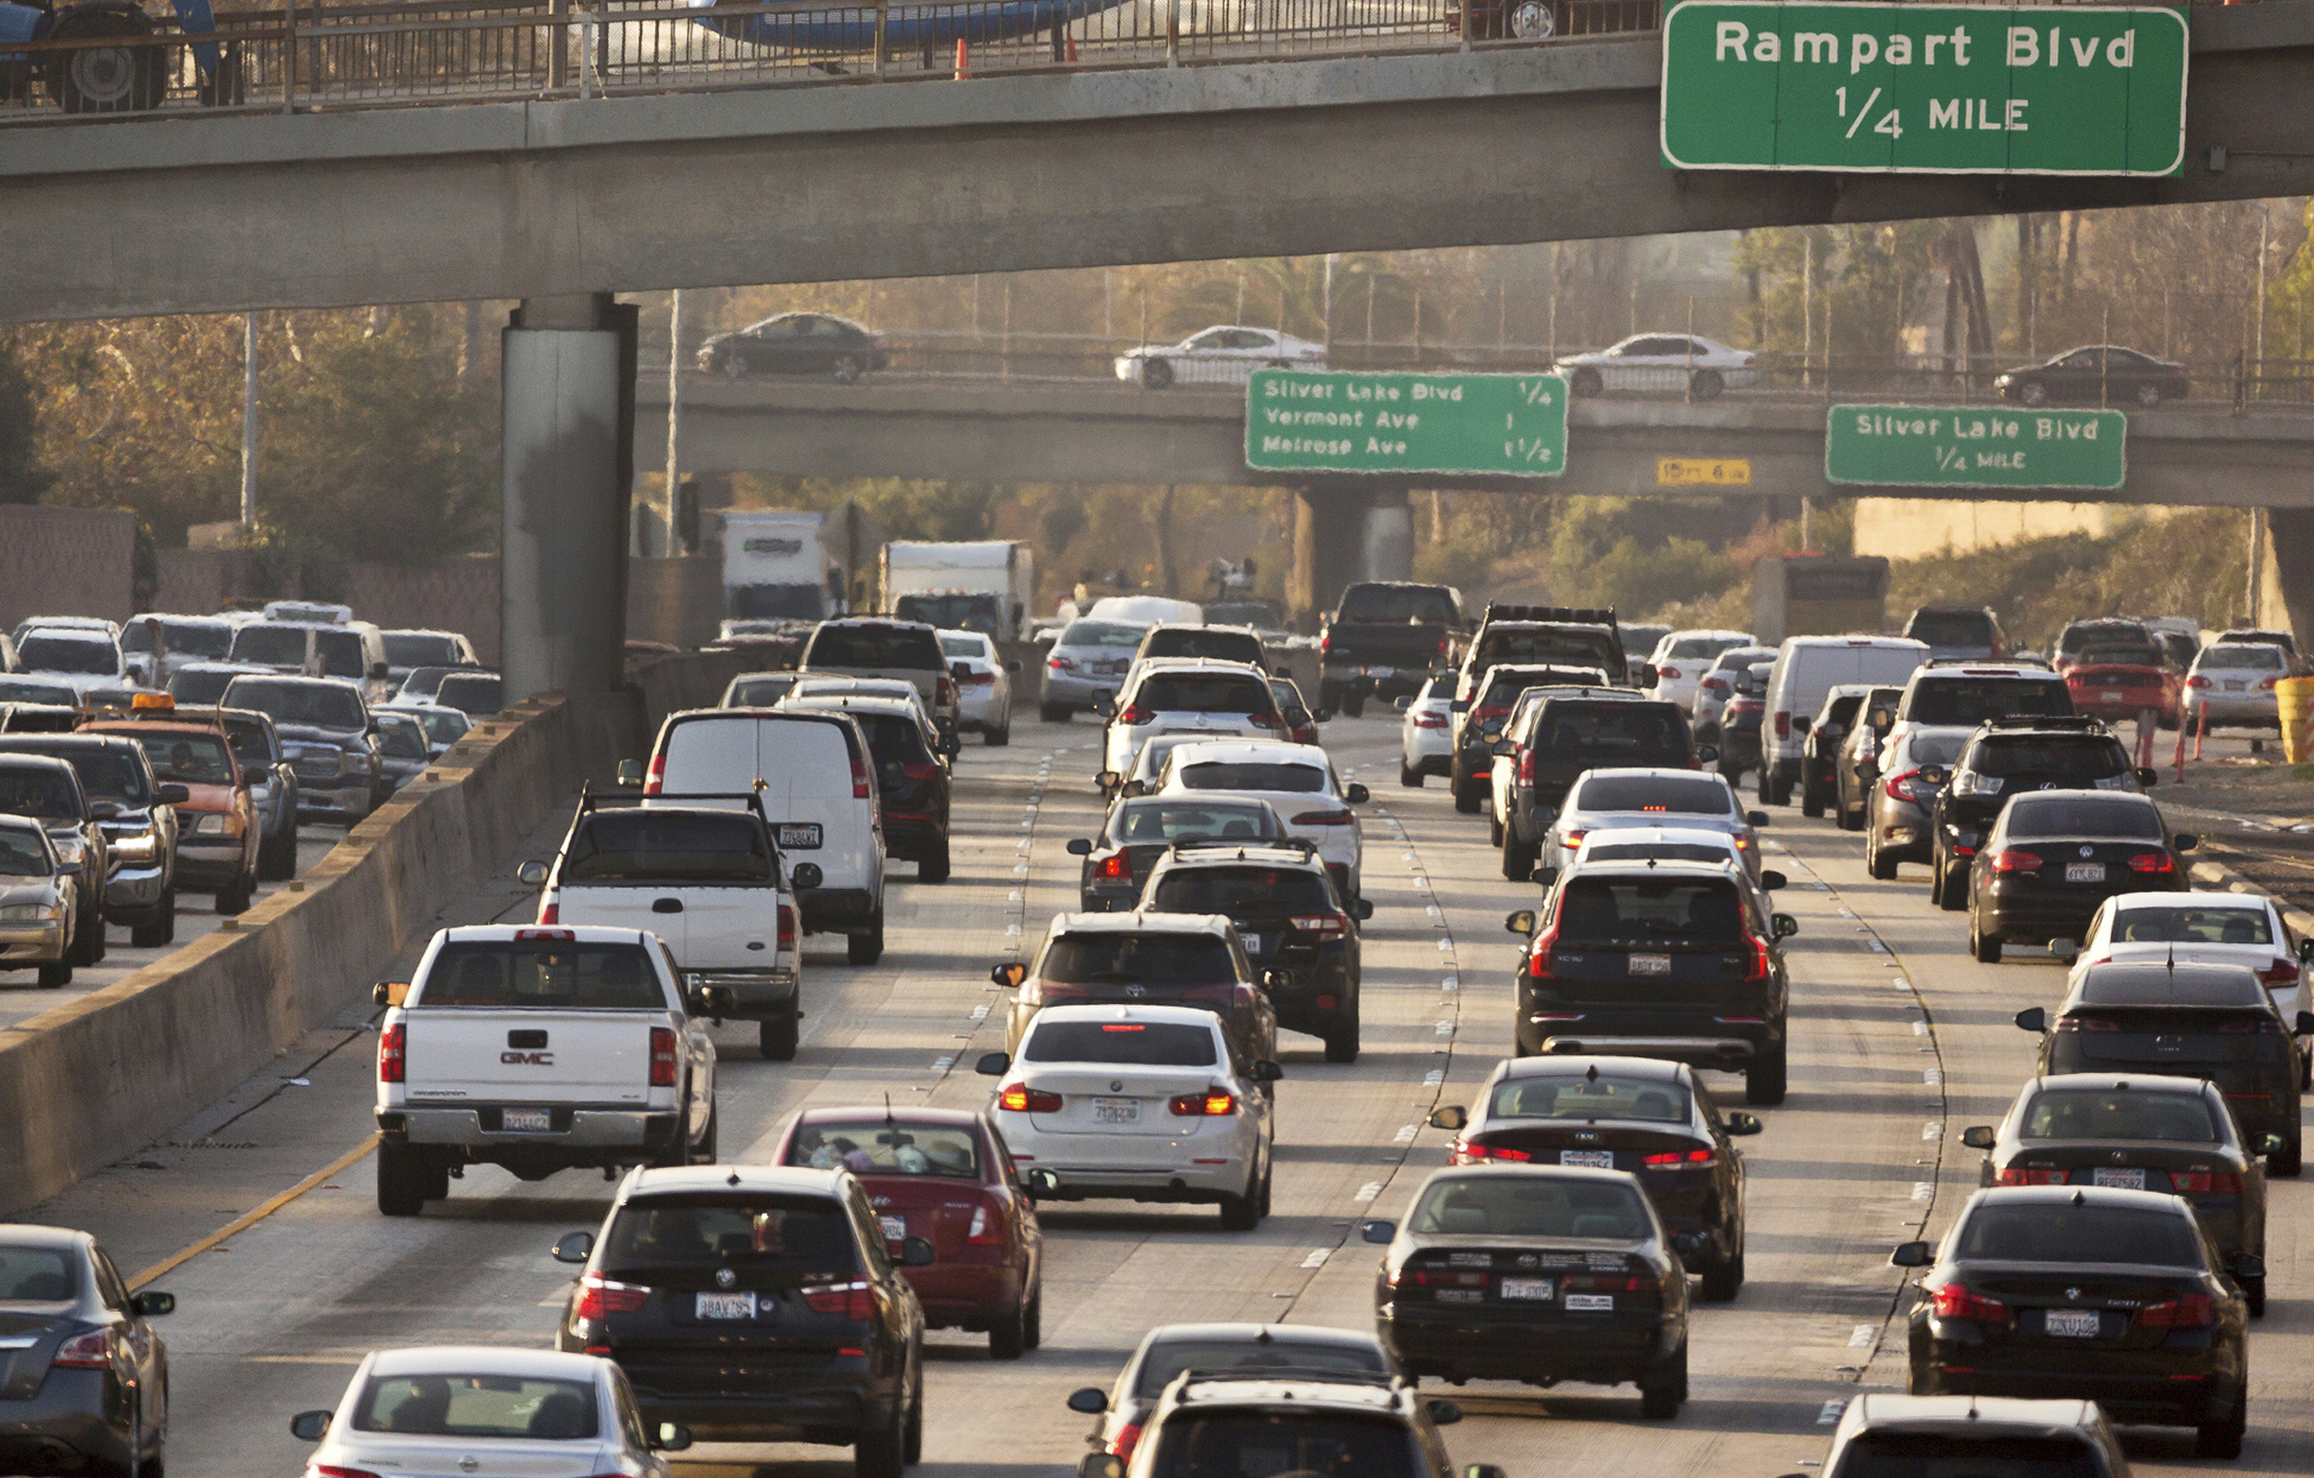 This photo shows traffic on the Hollywood Freeway in Los Angeles on Dec. 12, 2018.